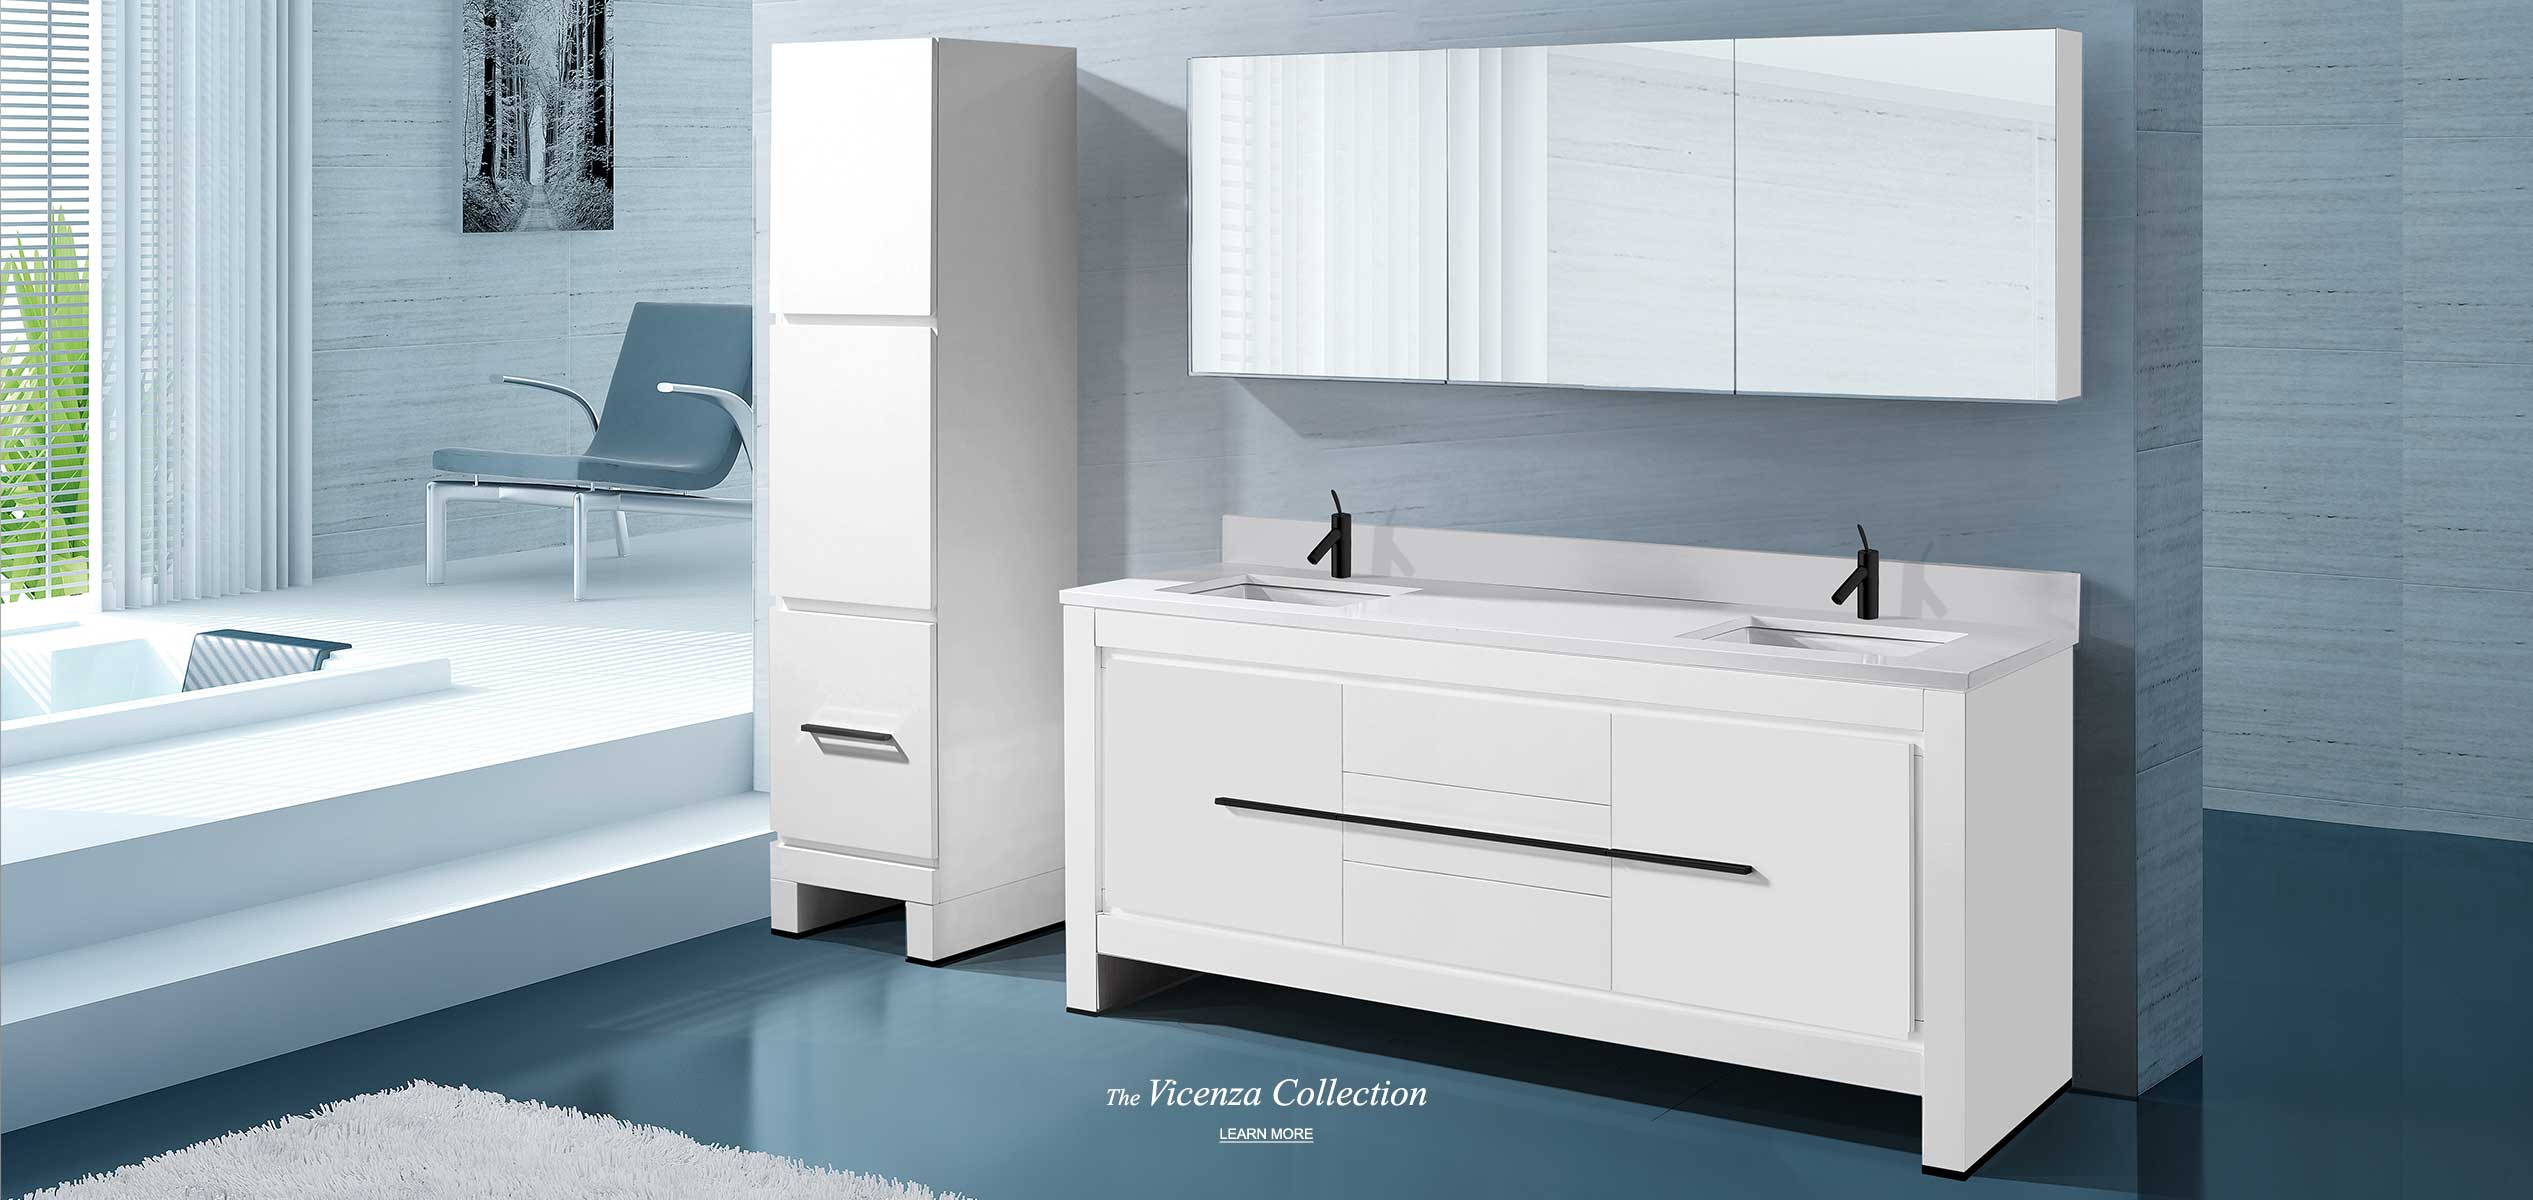 Vicenza 72 inch double bowl vanity and linen cabinet in white with medicine cabinet